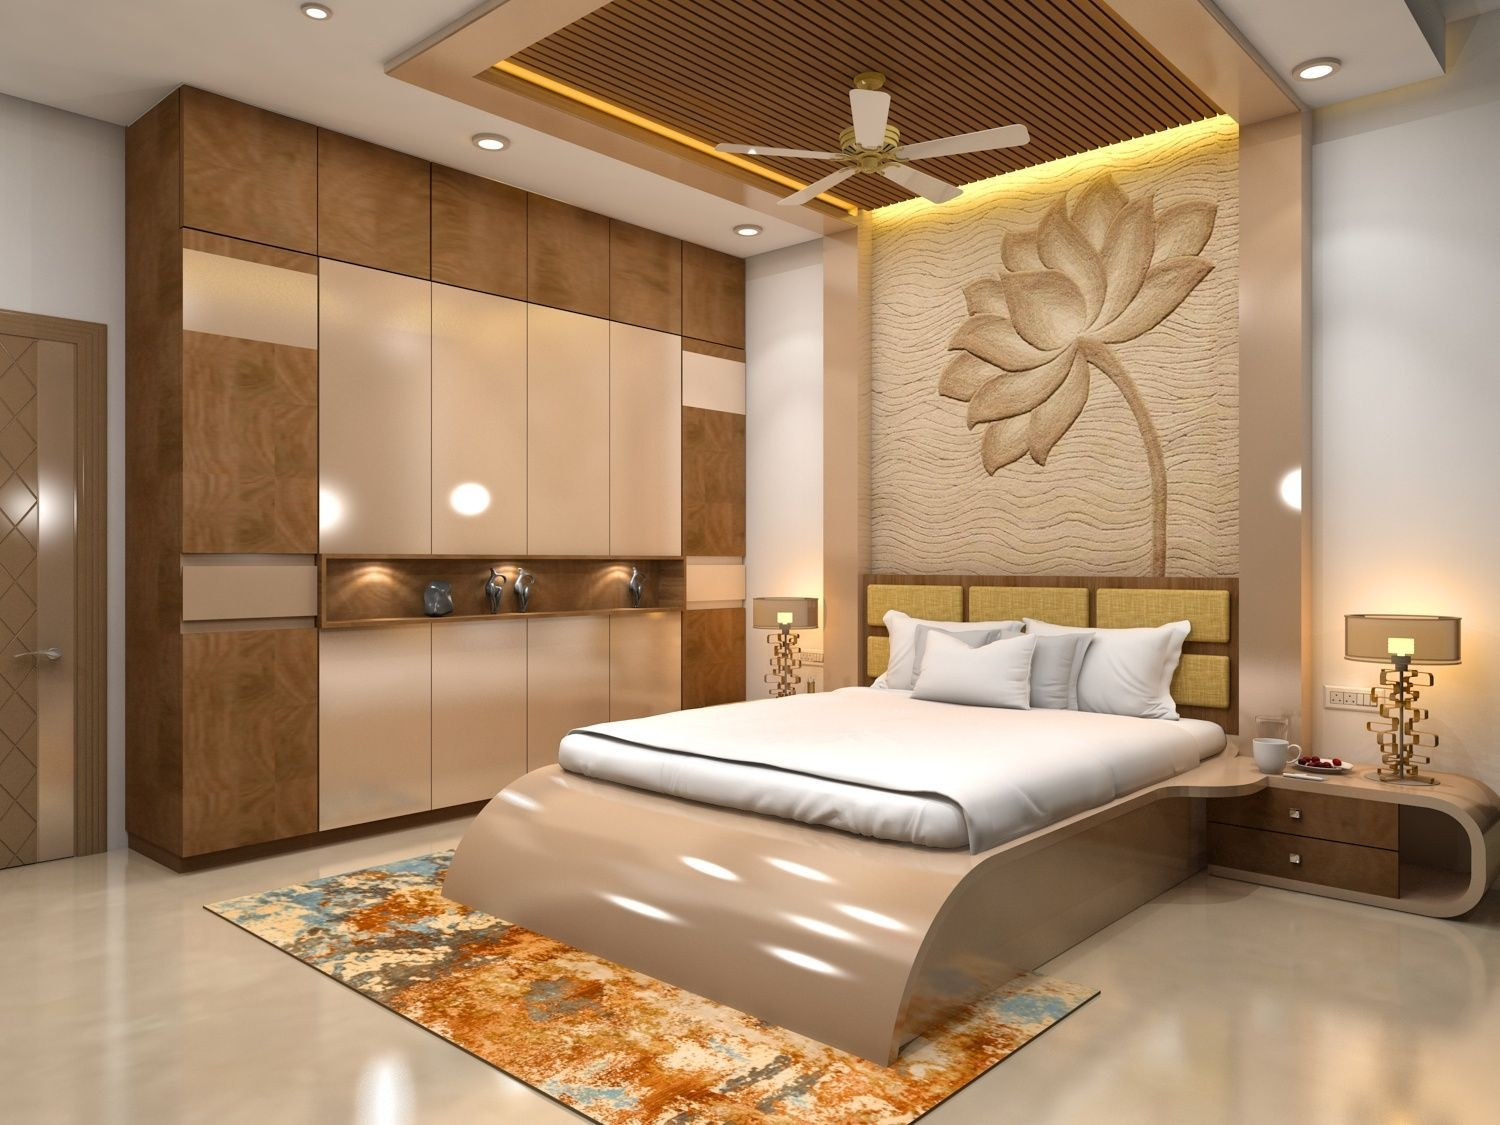 Bedroom Interior  Modern Bedroom Interior Bedroom False Ceiling Design Bedroom Furniture Design